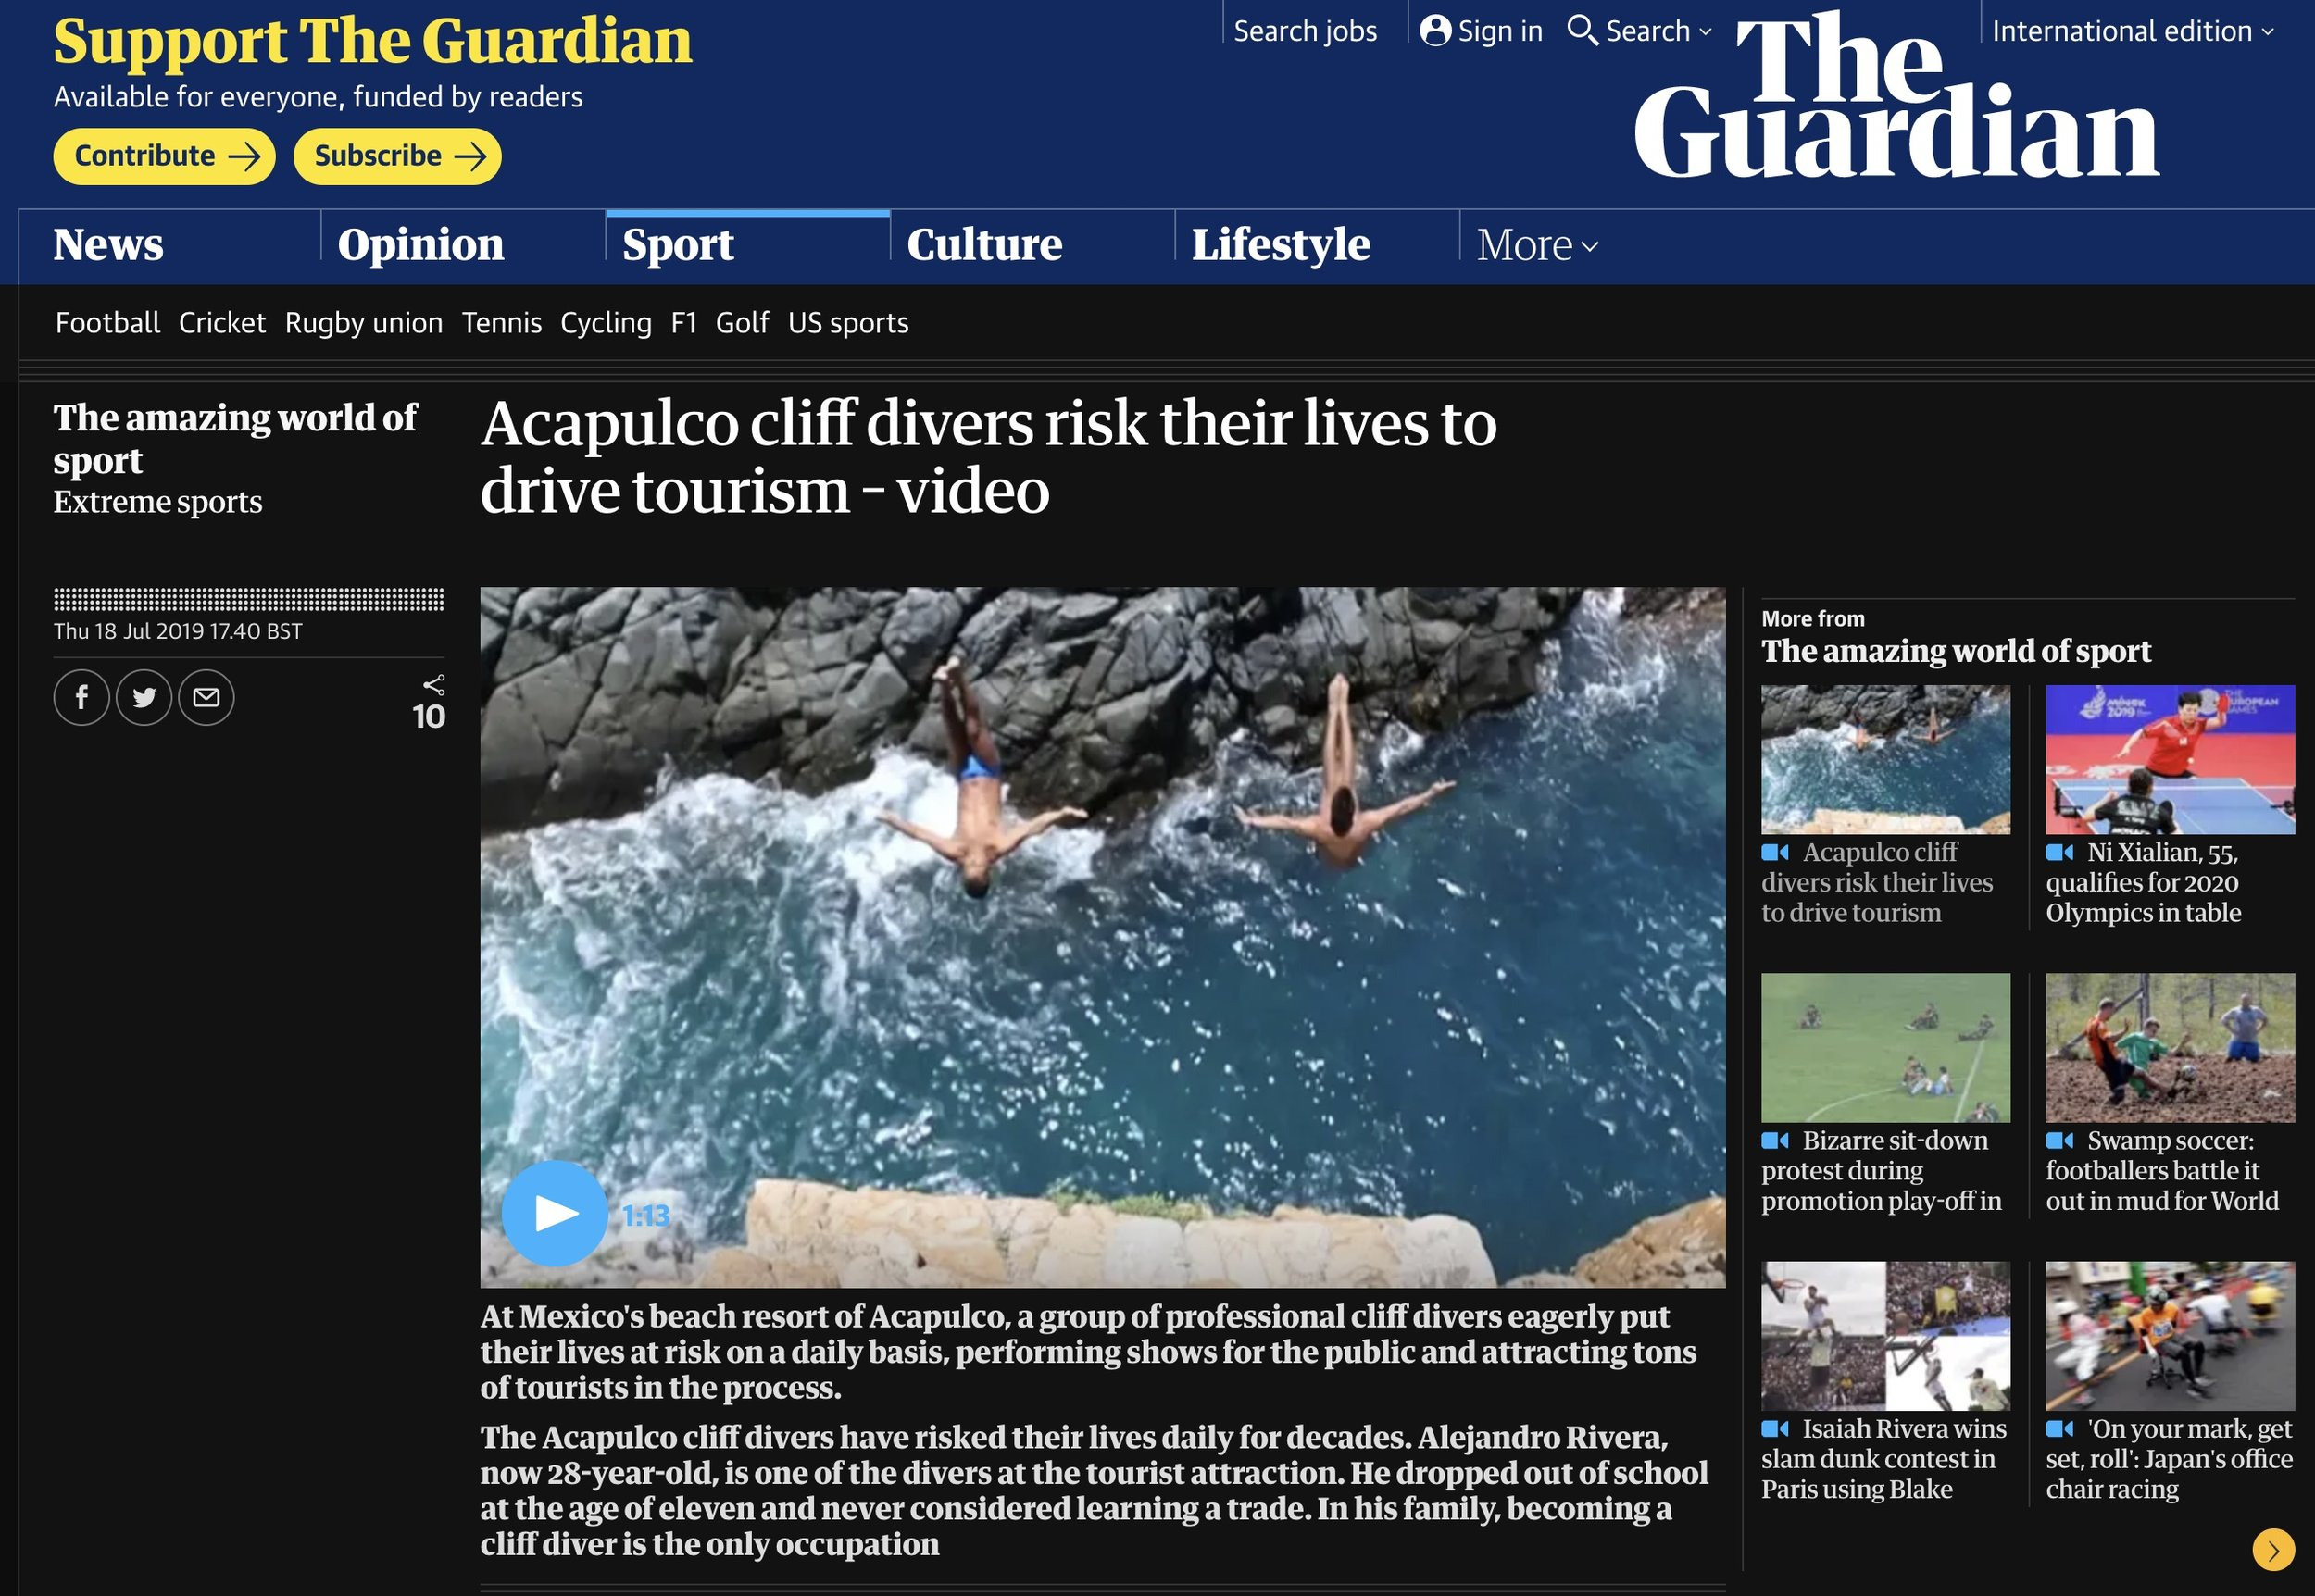 The story published on the Guardian